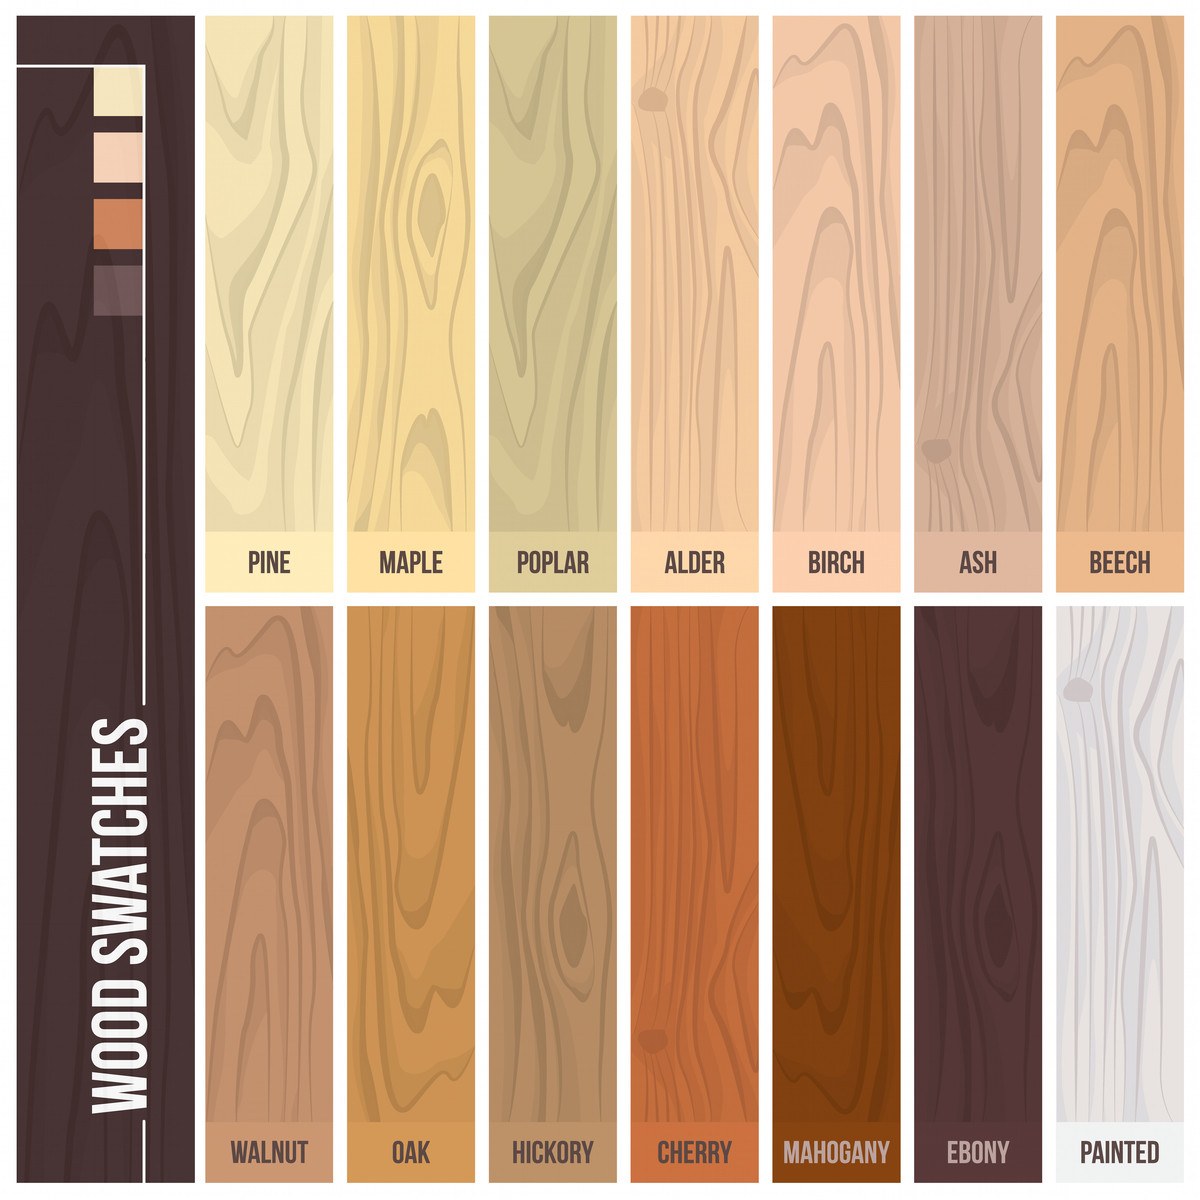 Oak Hardwood Flooring Colours Of 12 Types Of Hardwood Flooring Species Styles Edging Dimensions Intended for Types Of Hardwood Flooring Illustrated Guide